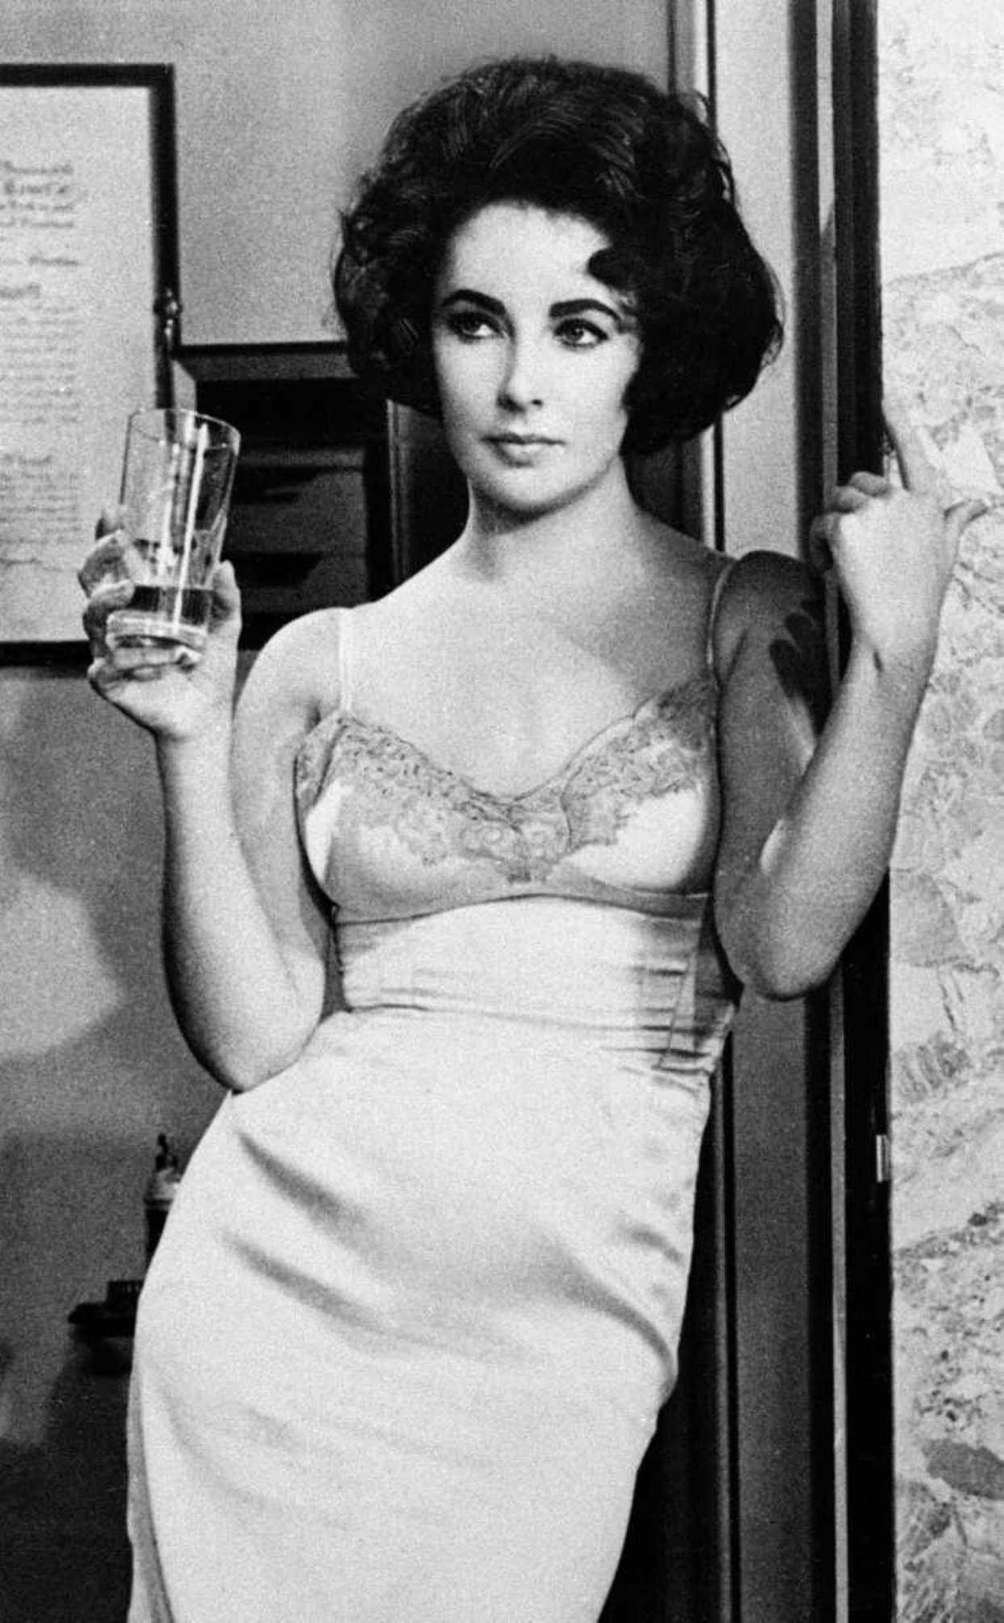 Elizabeth Taylor, in a scene from the 1960